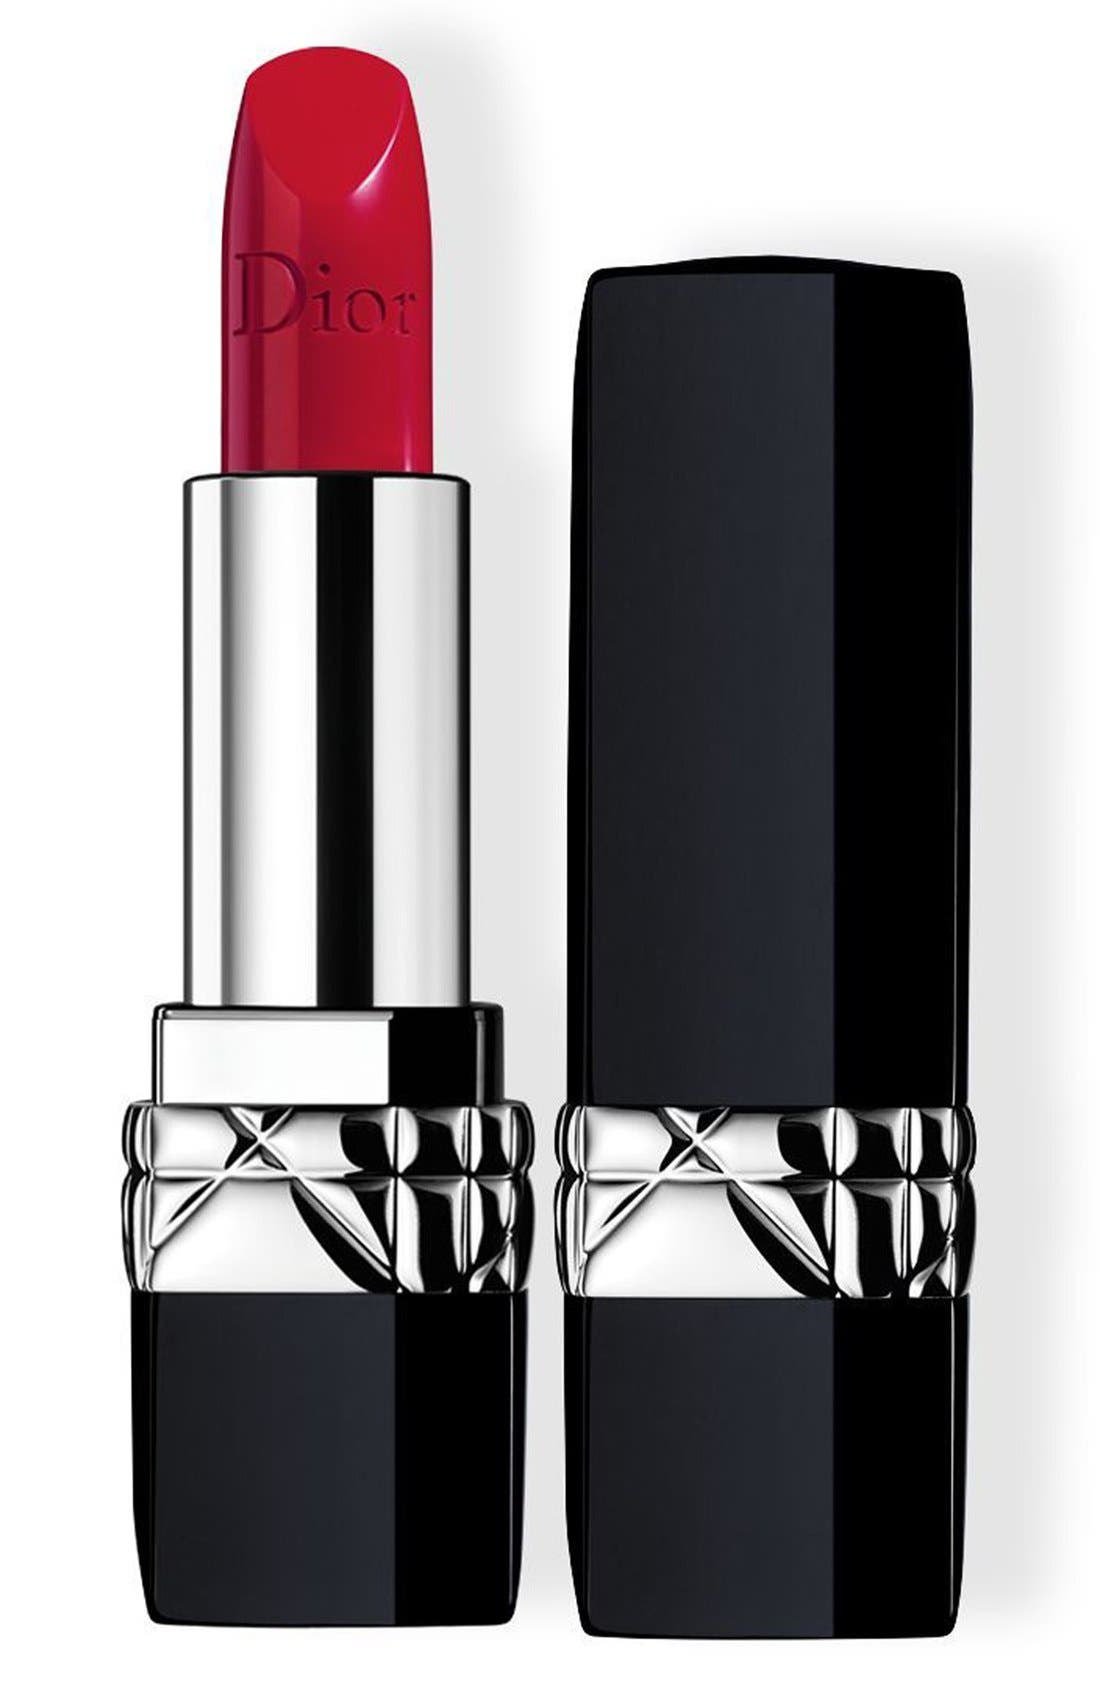 Dior Couture Color Rouge Dior Lipstick - 854 Concorde